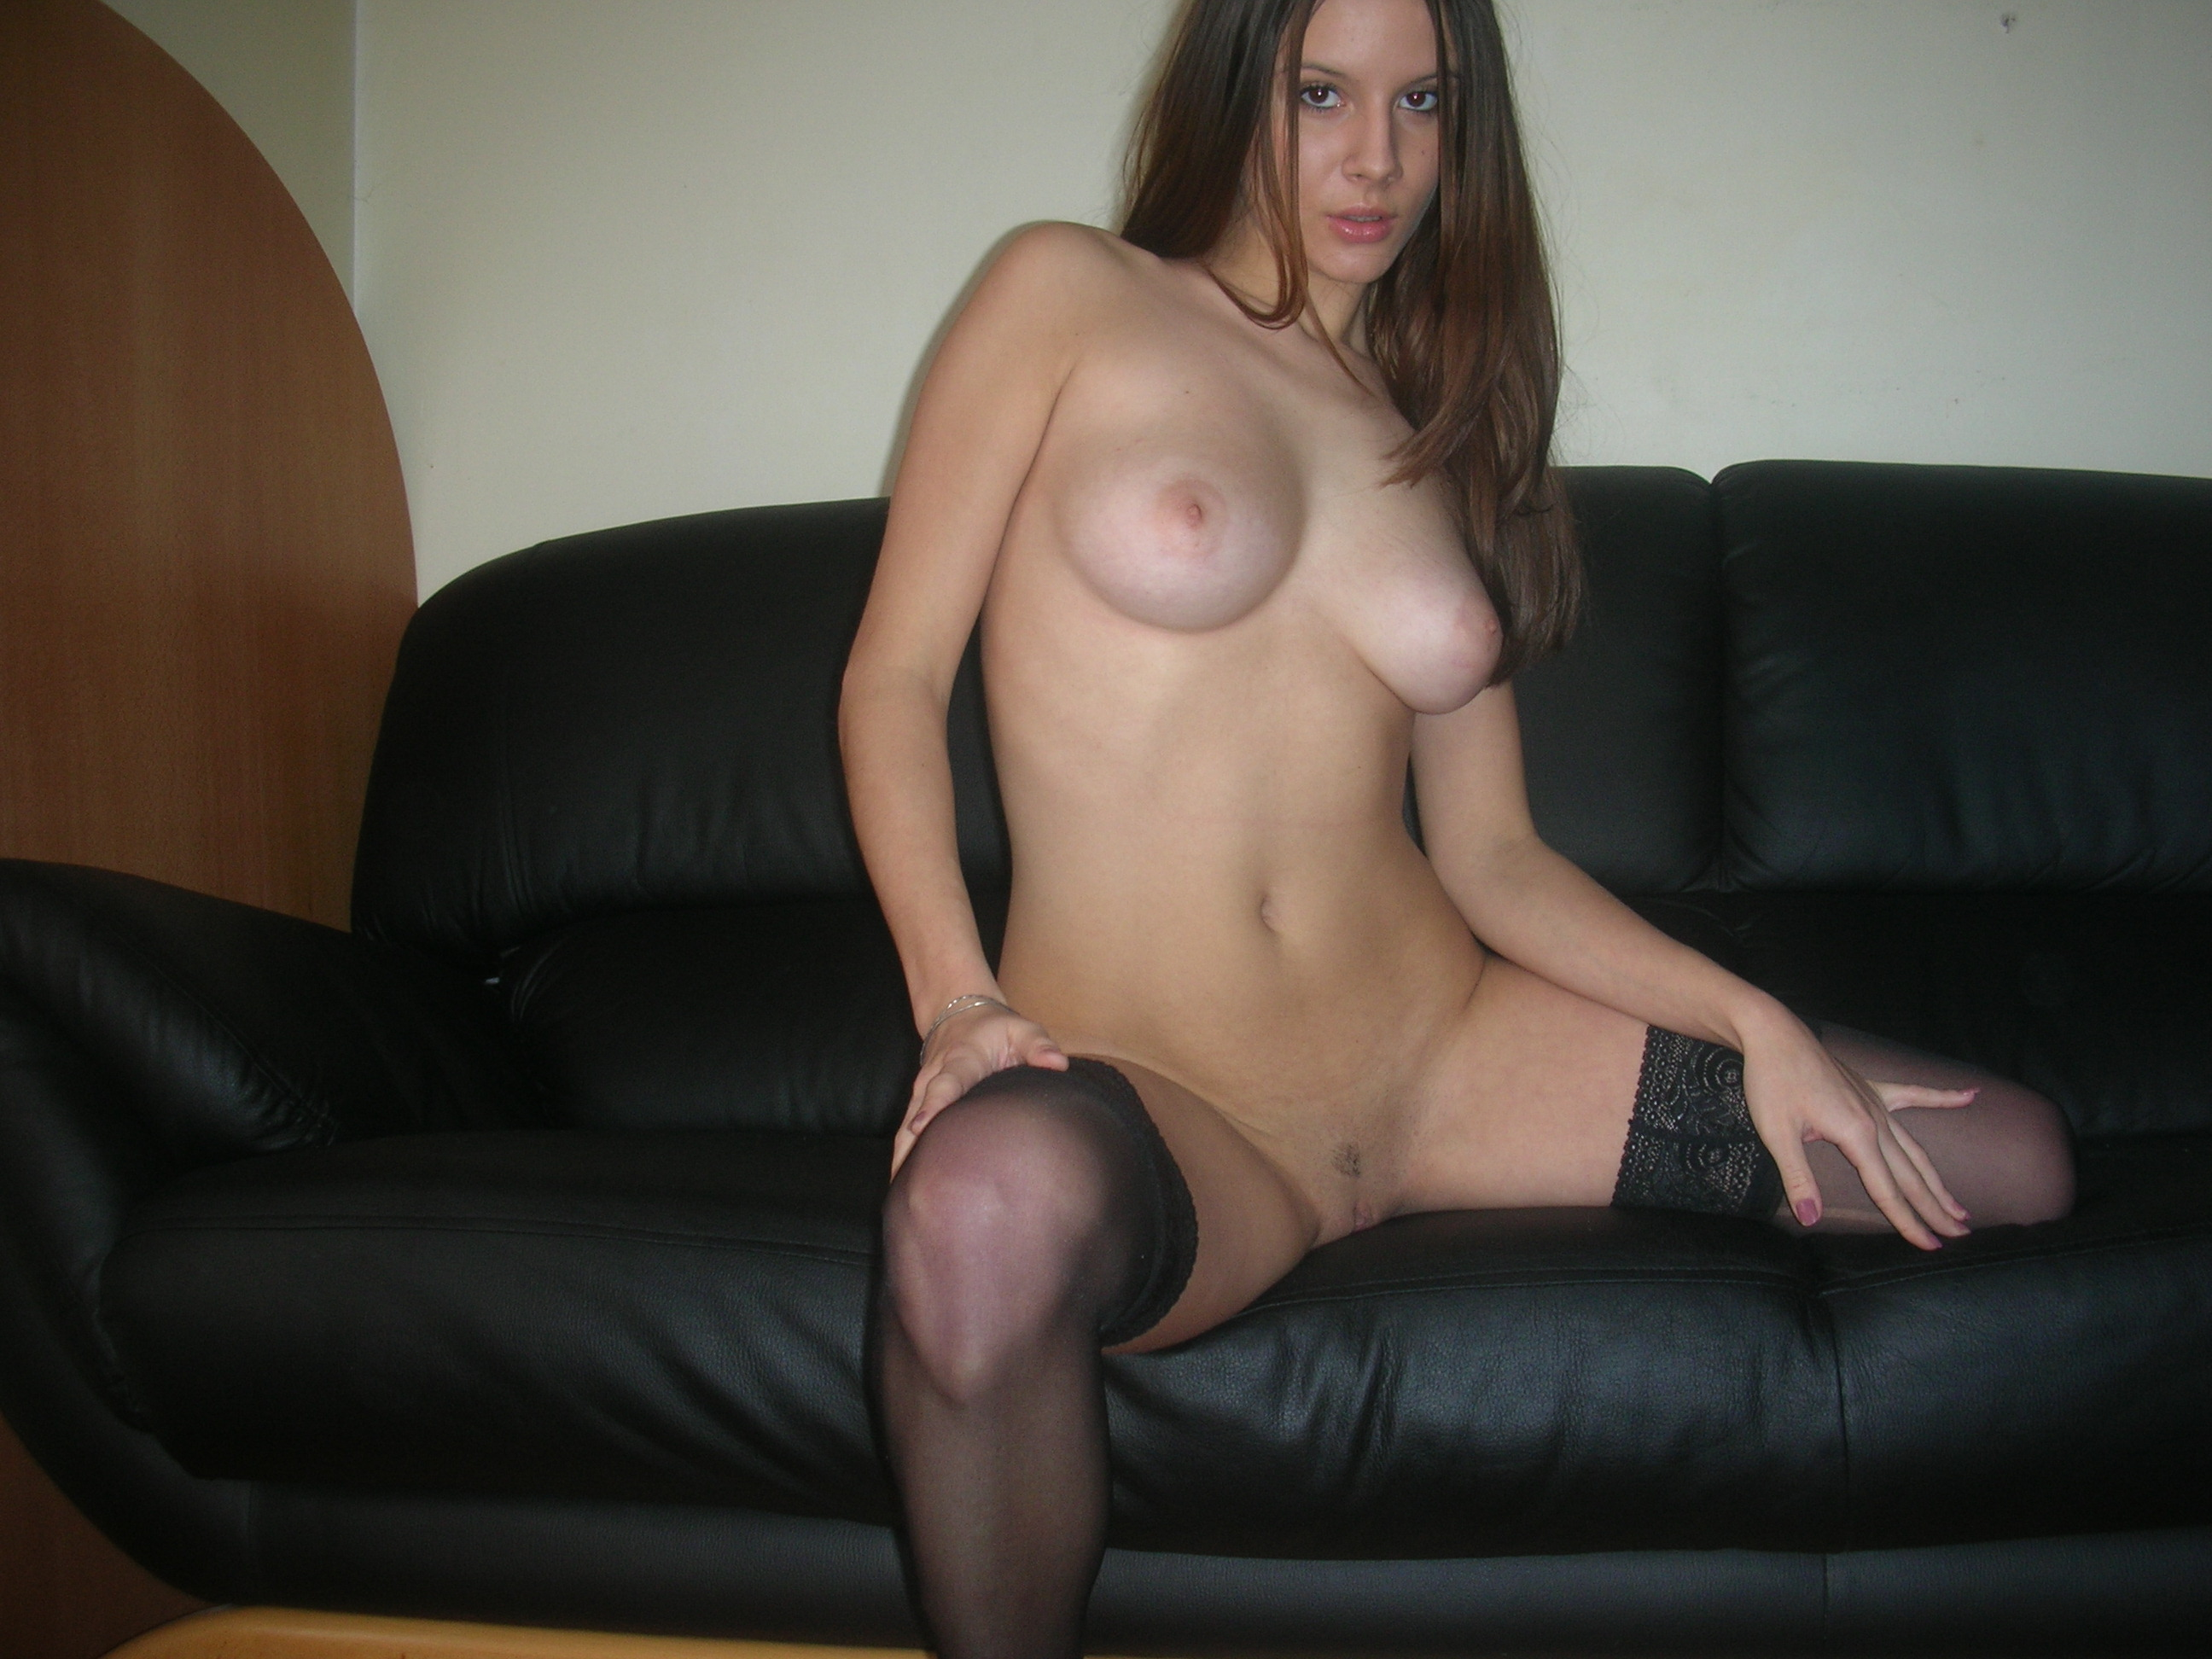 gallery   the sexiest amateur girl on the web